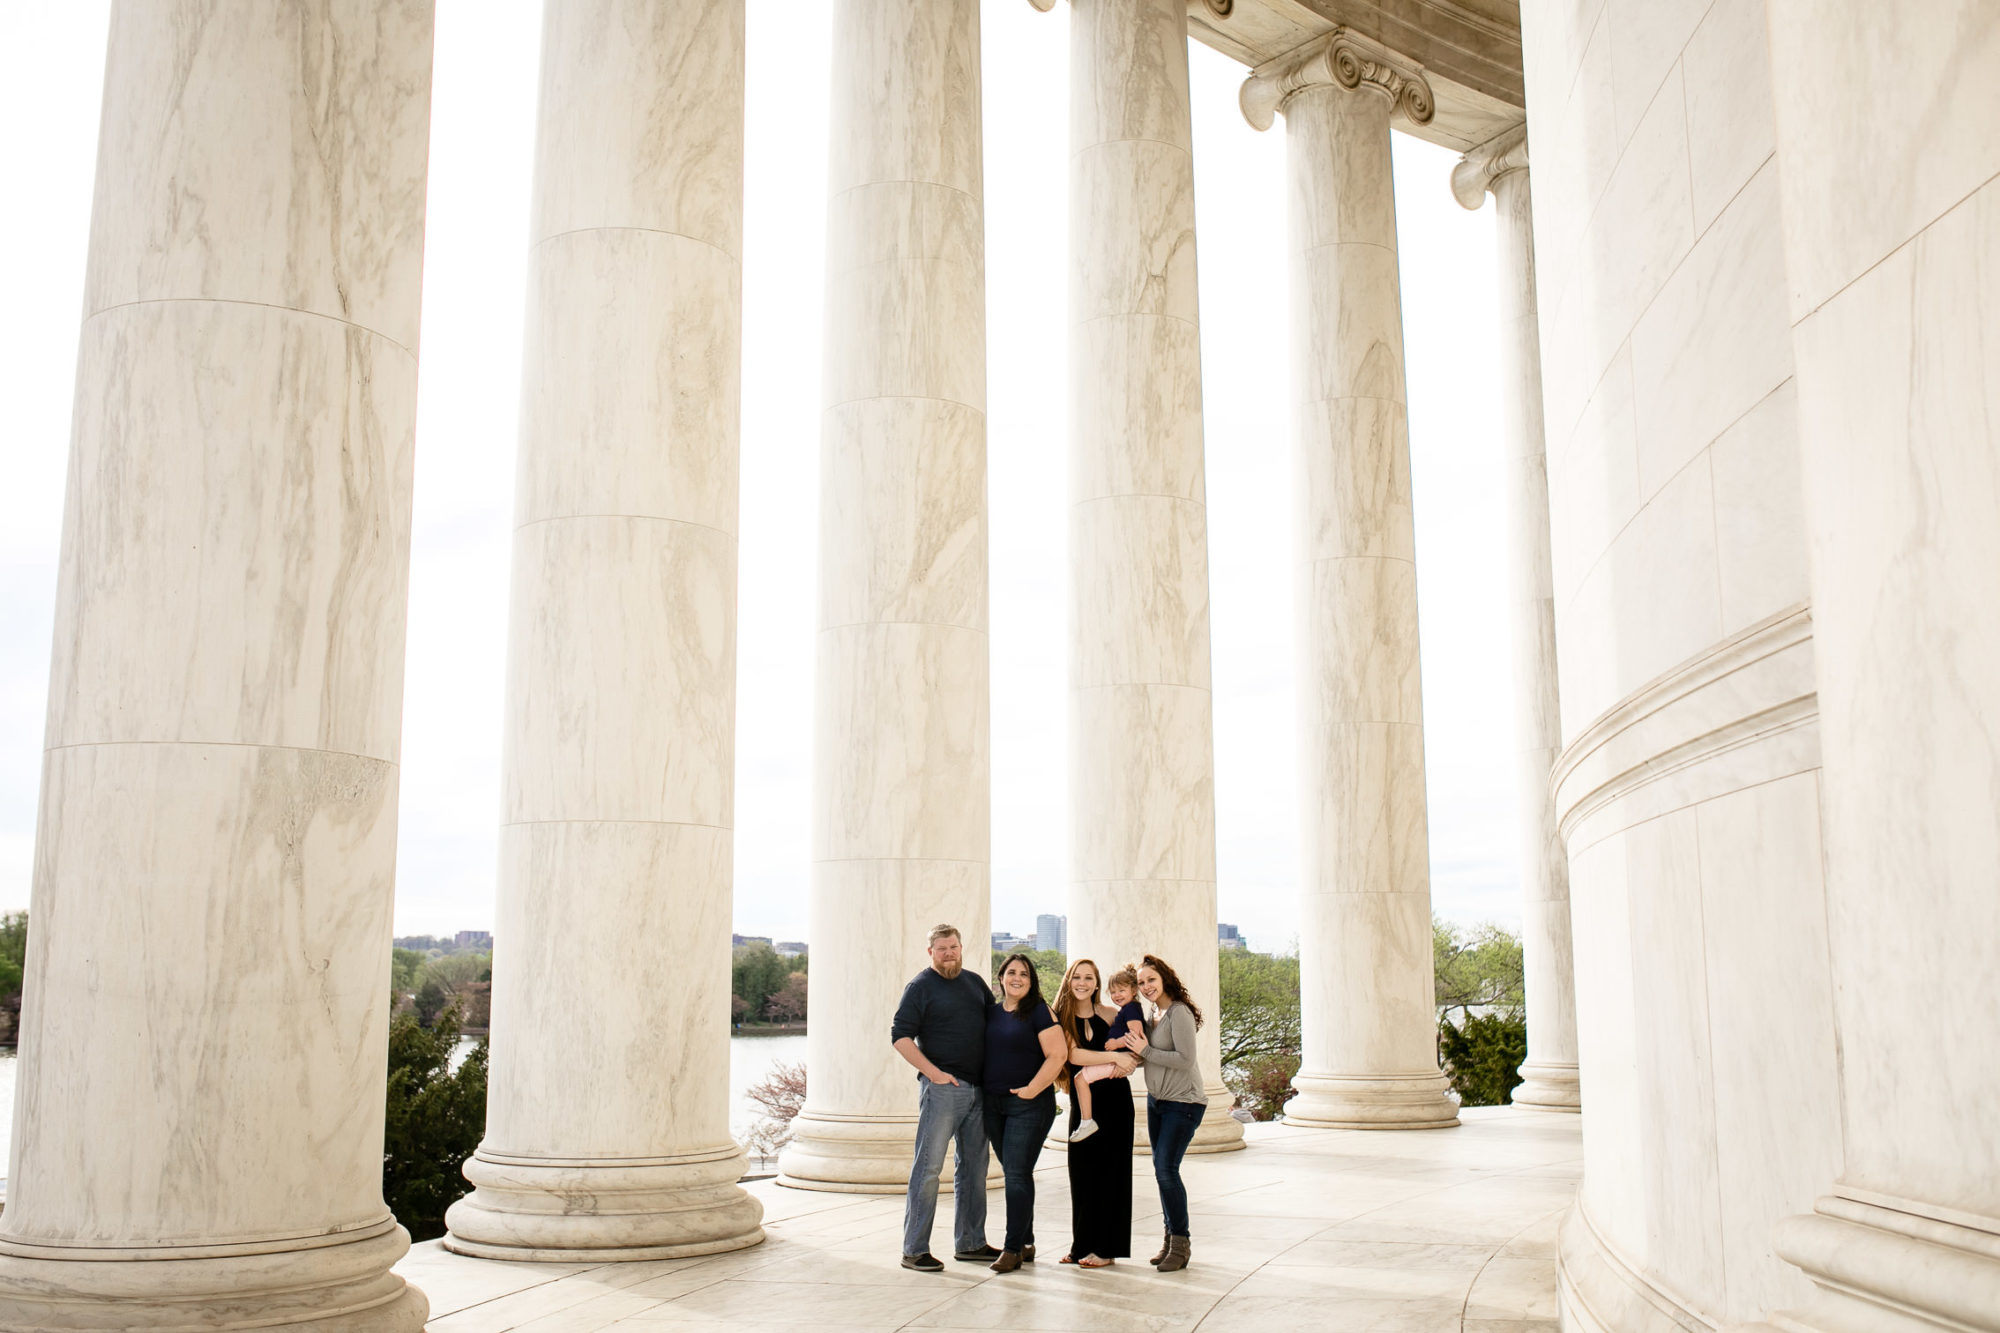 Washinton D.C. Family Portraits